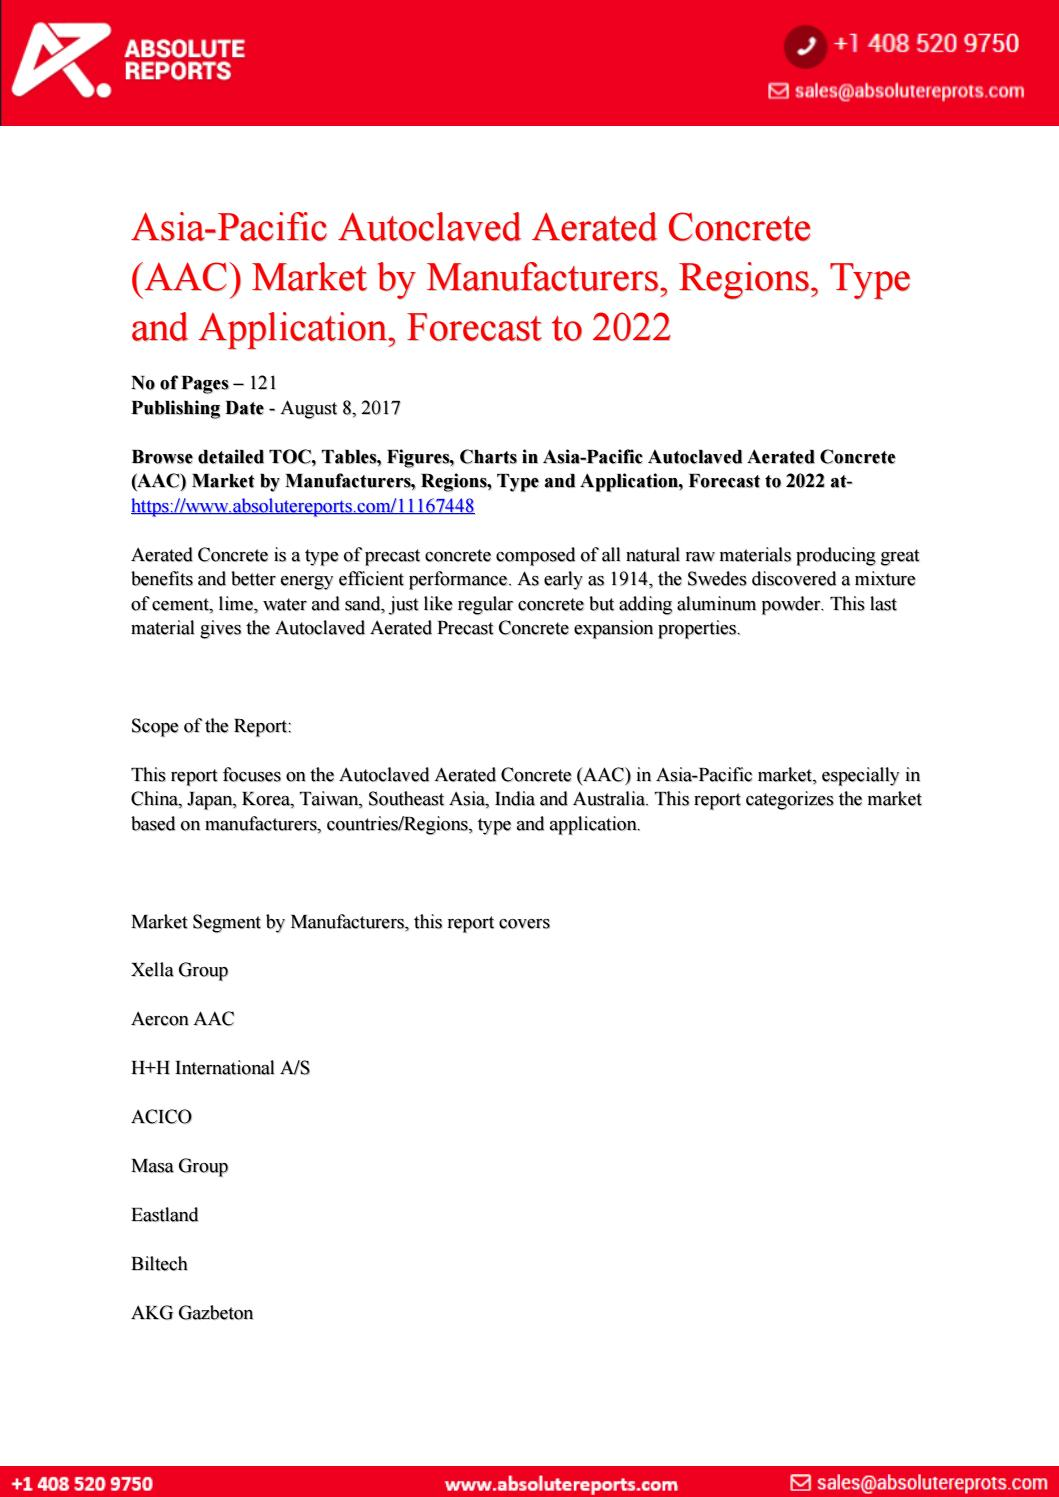 11167448 asia pacific autoclaved aerated concrete aac market by  manufacturers regions type and appli